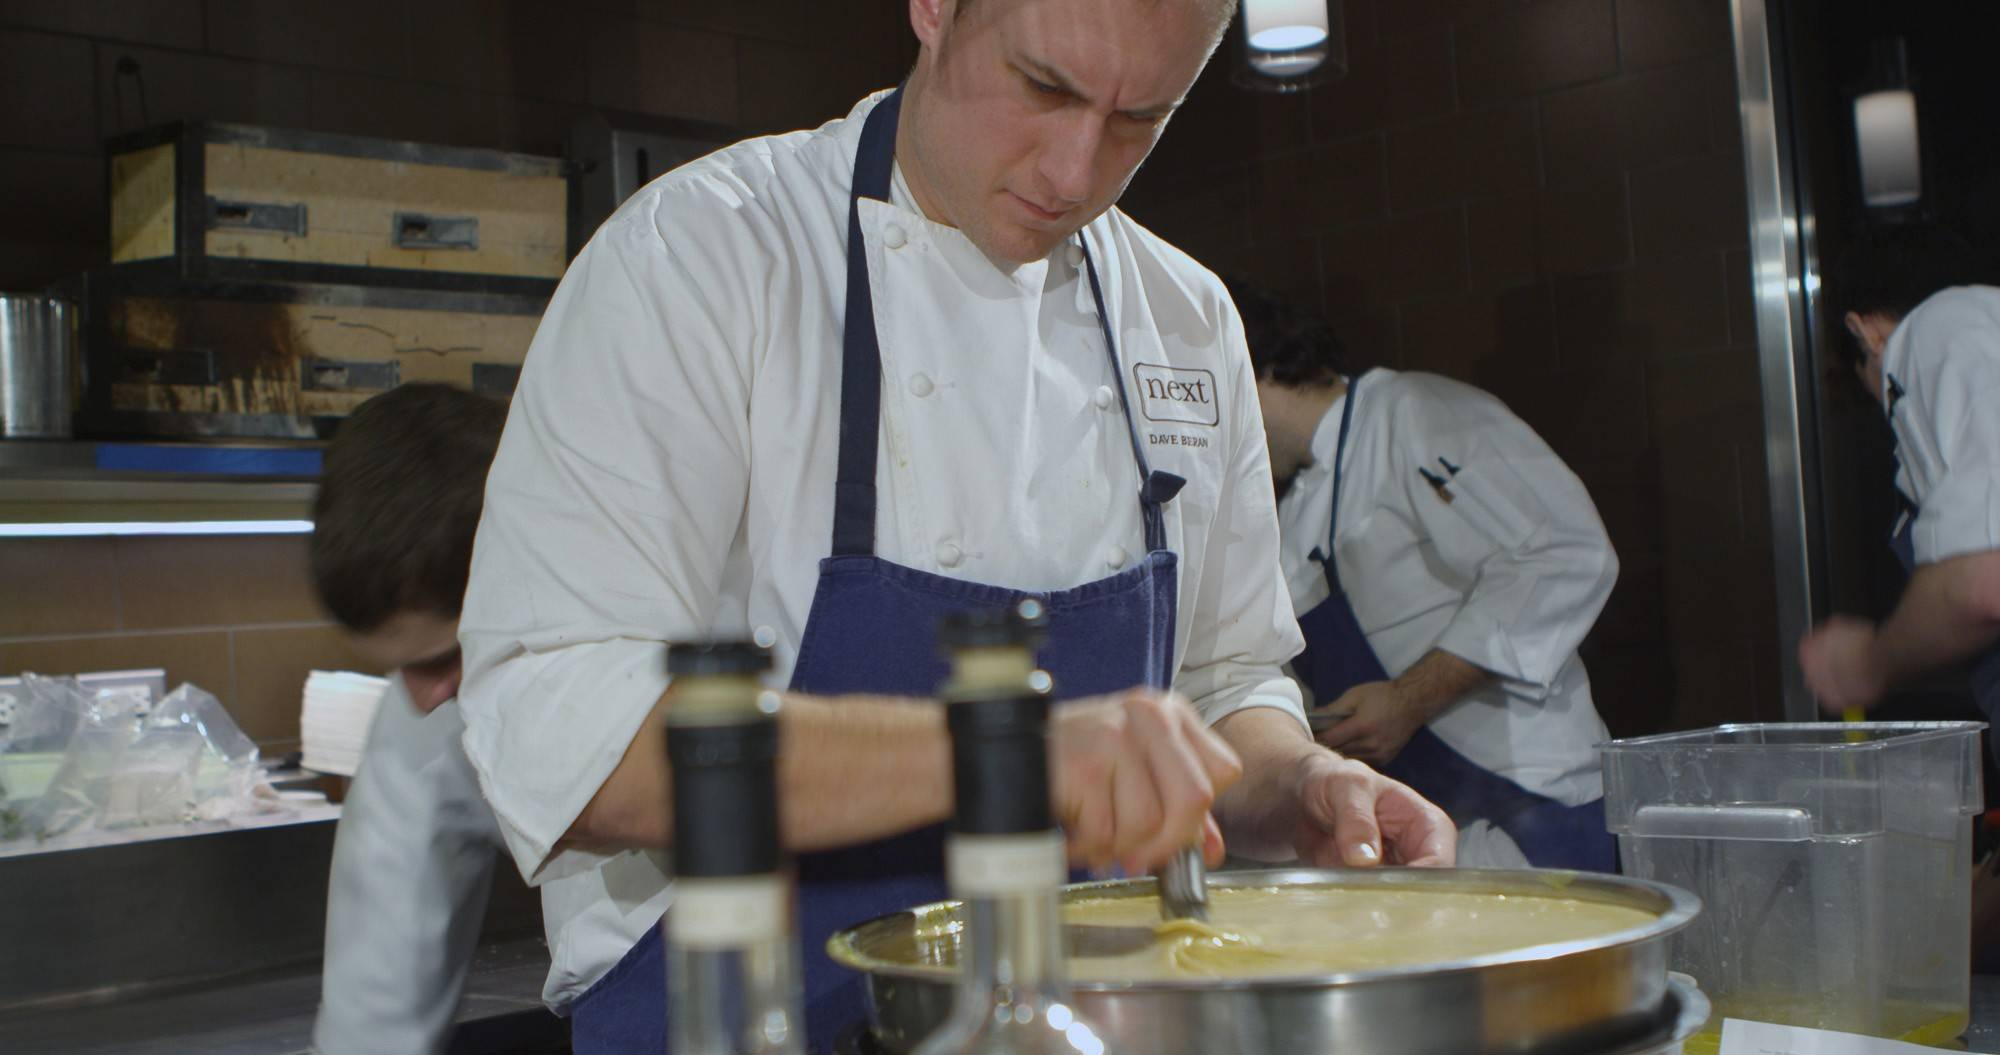 Dave Beran of Next in Chicago was named the James Beard Foundation top regional chef for the Great Lakes region.